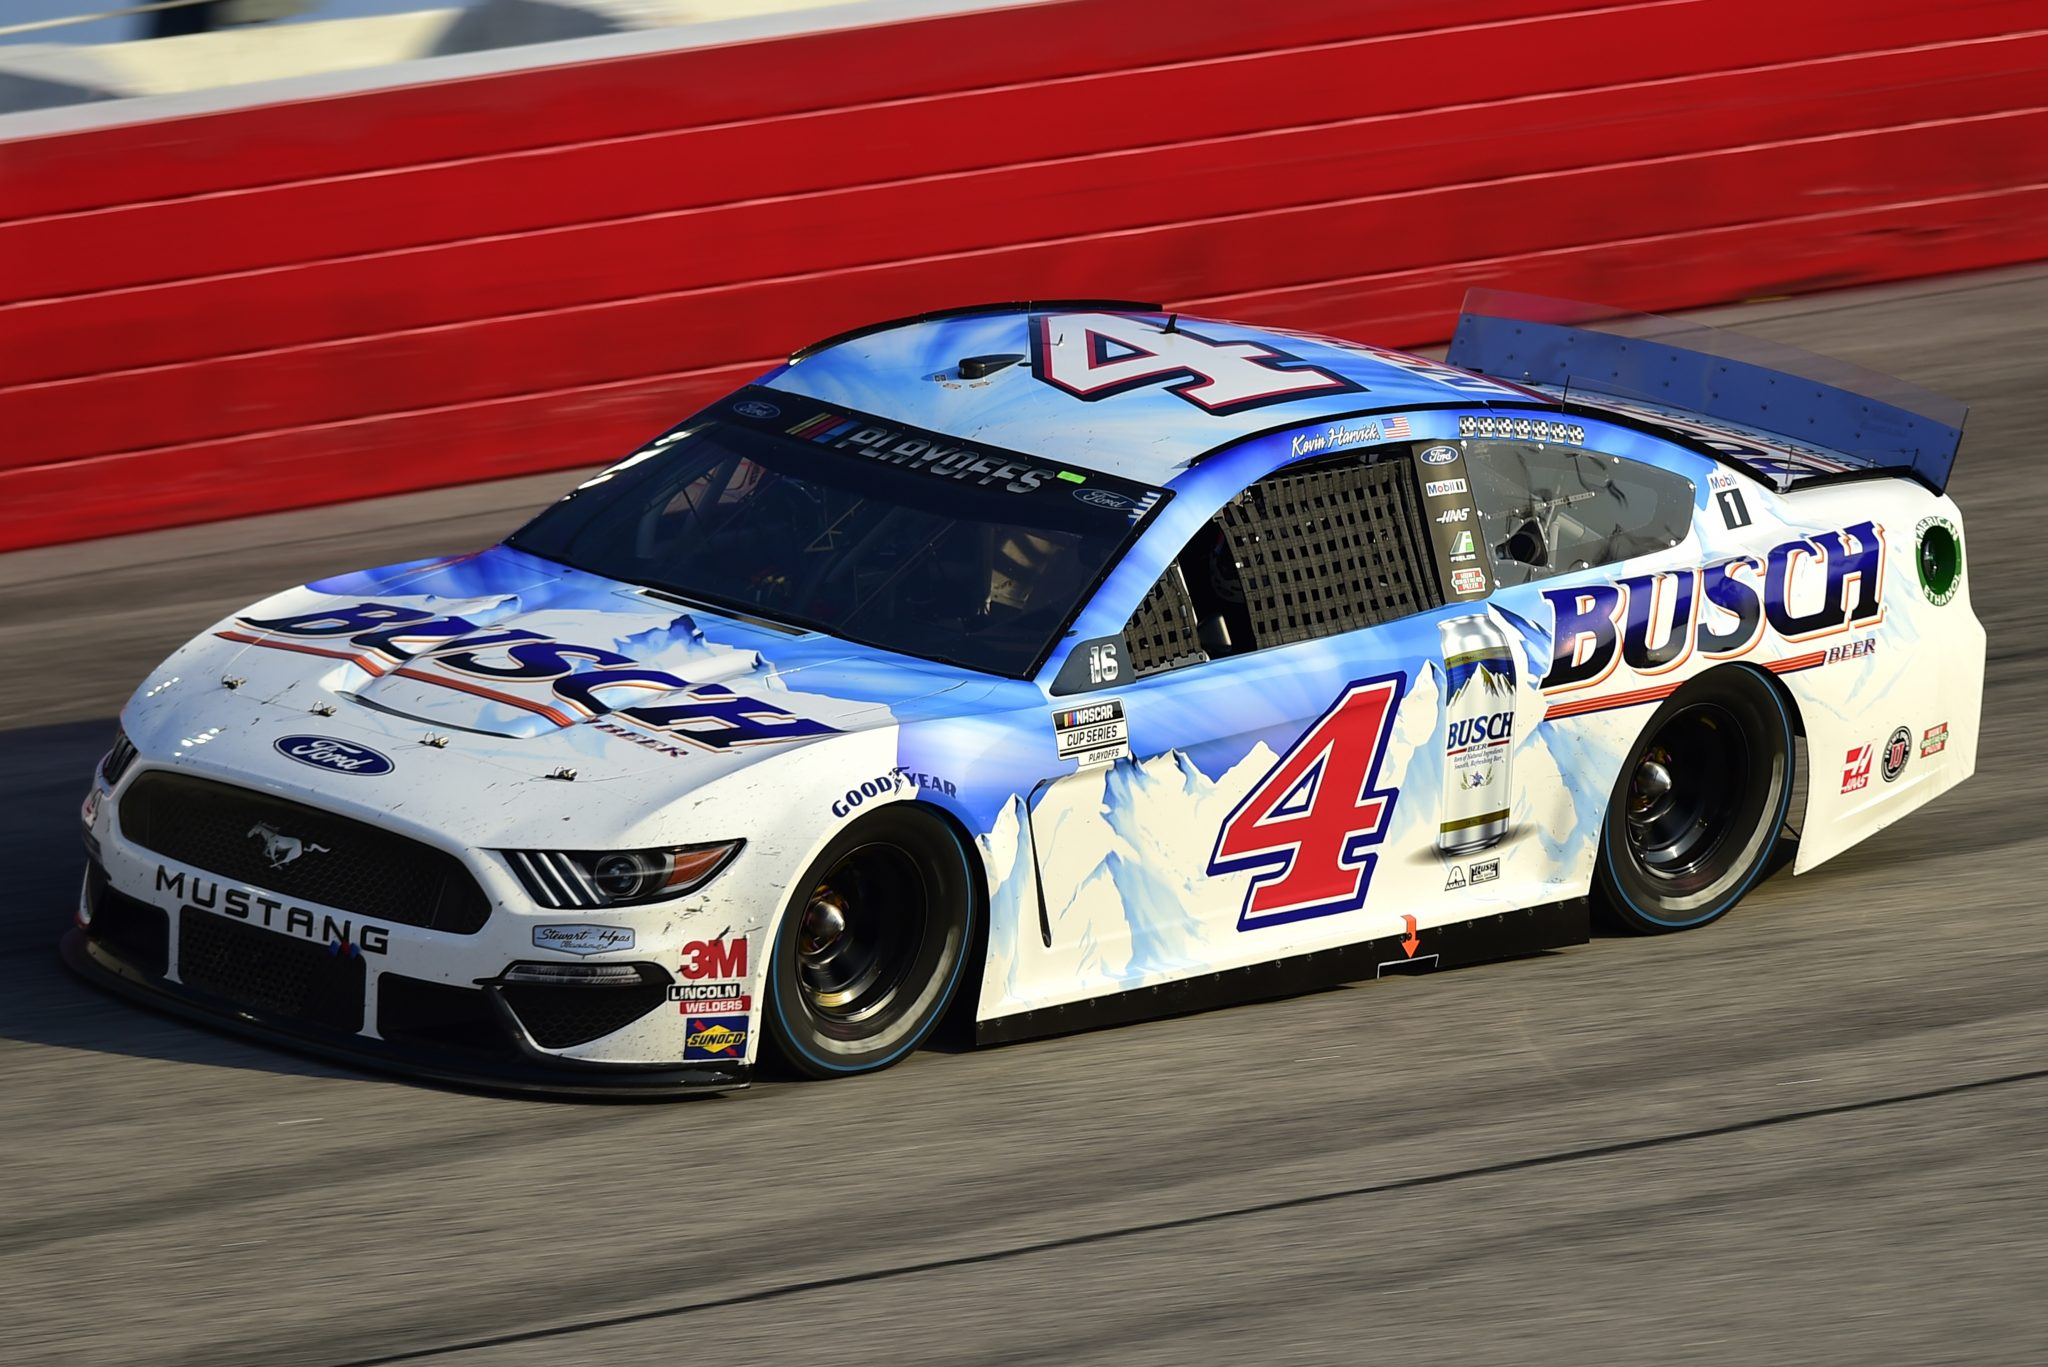 DARLINGTON, SOUTH CAROLINA - SEPTEMBER 06: Kevin Harvick, driver of the #4 Busch Beer Throwback Ford, drives during the NASCAR Cup Series Cook Out Southern 500 at Darlington Raceway on September 06, 2020 in Darlington, South Carolina. (Photo by Jared C. Tilton/Getty Images) | Getty Images